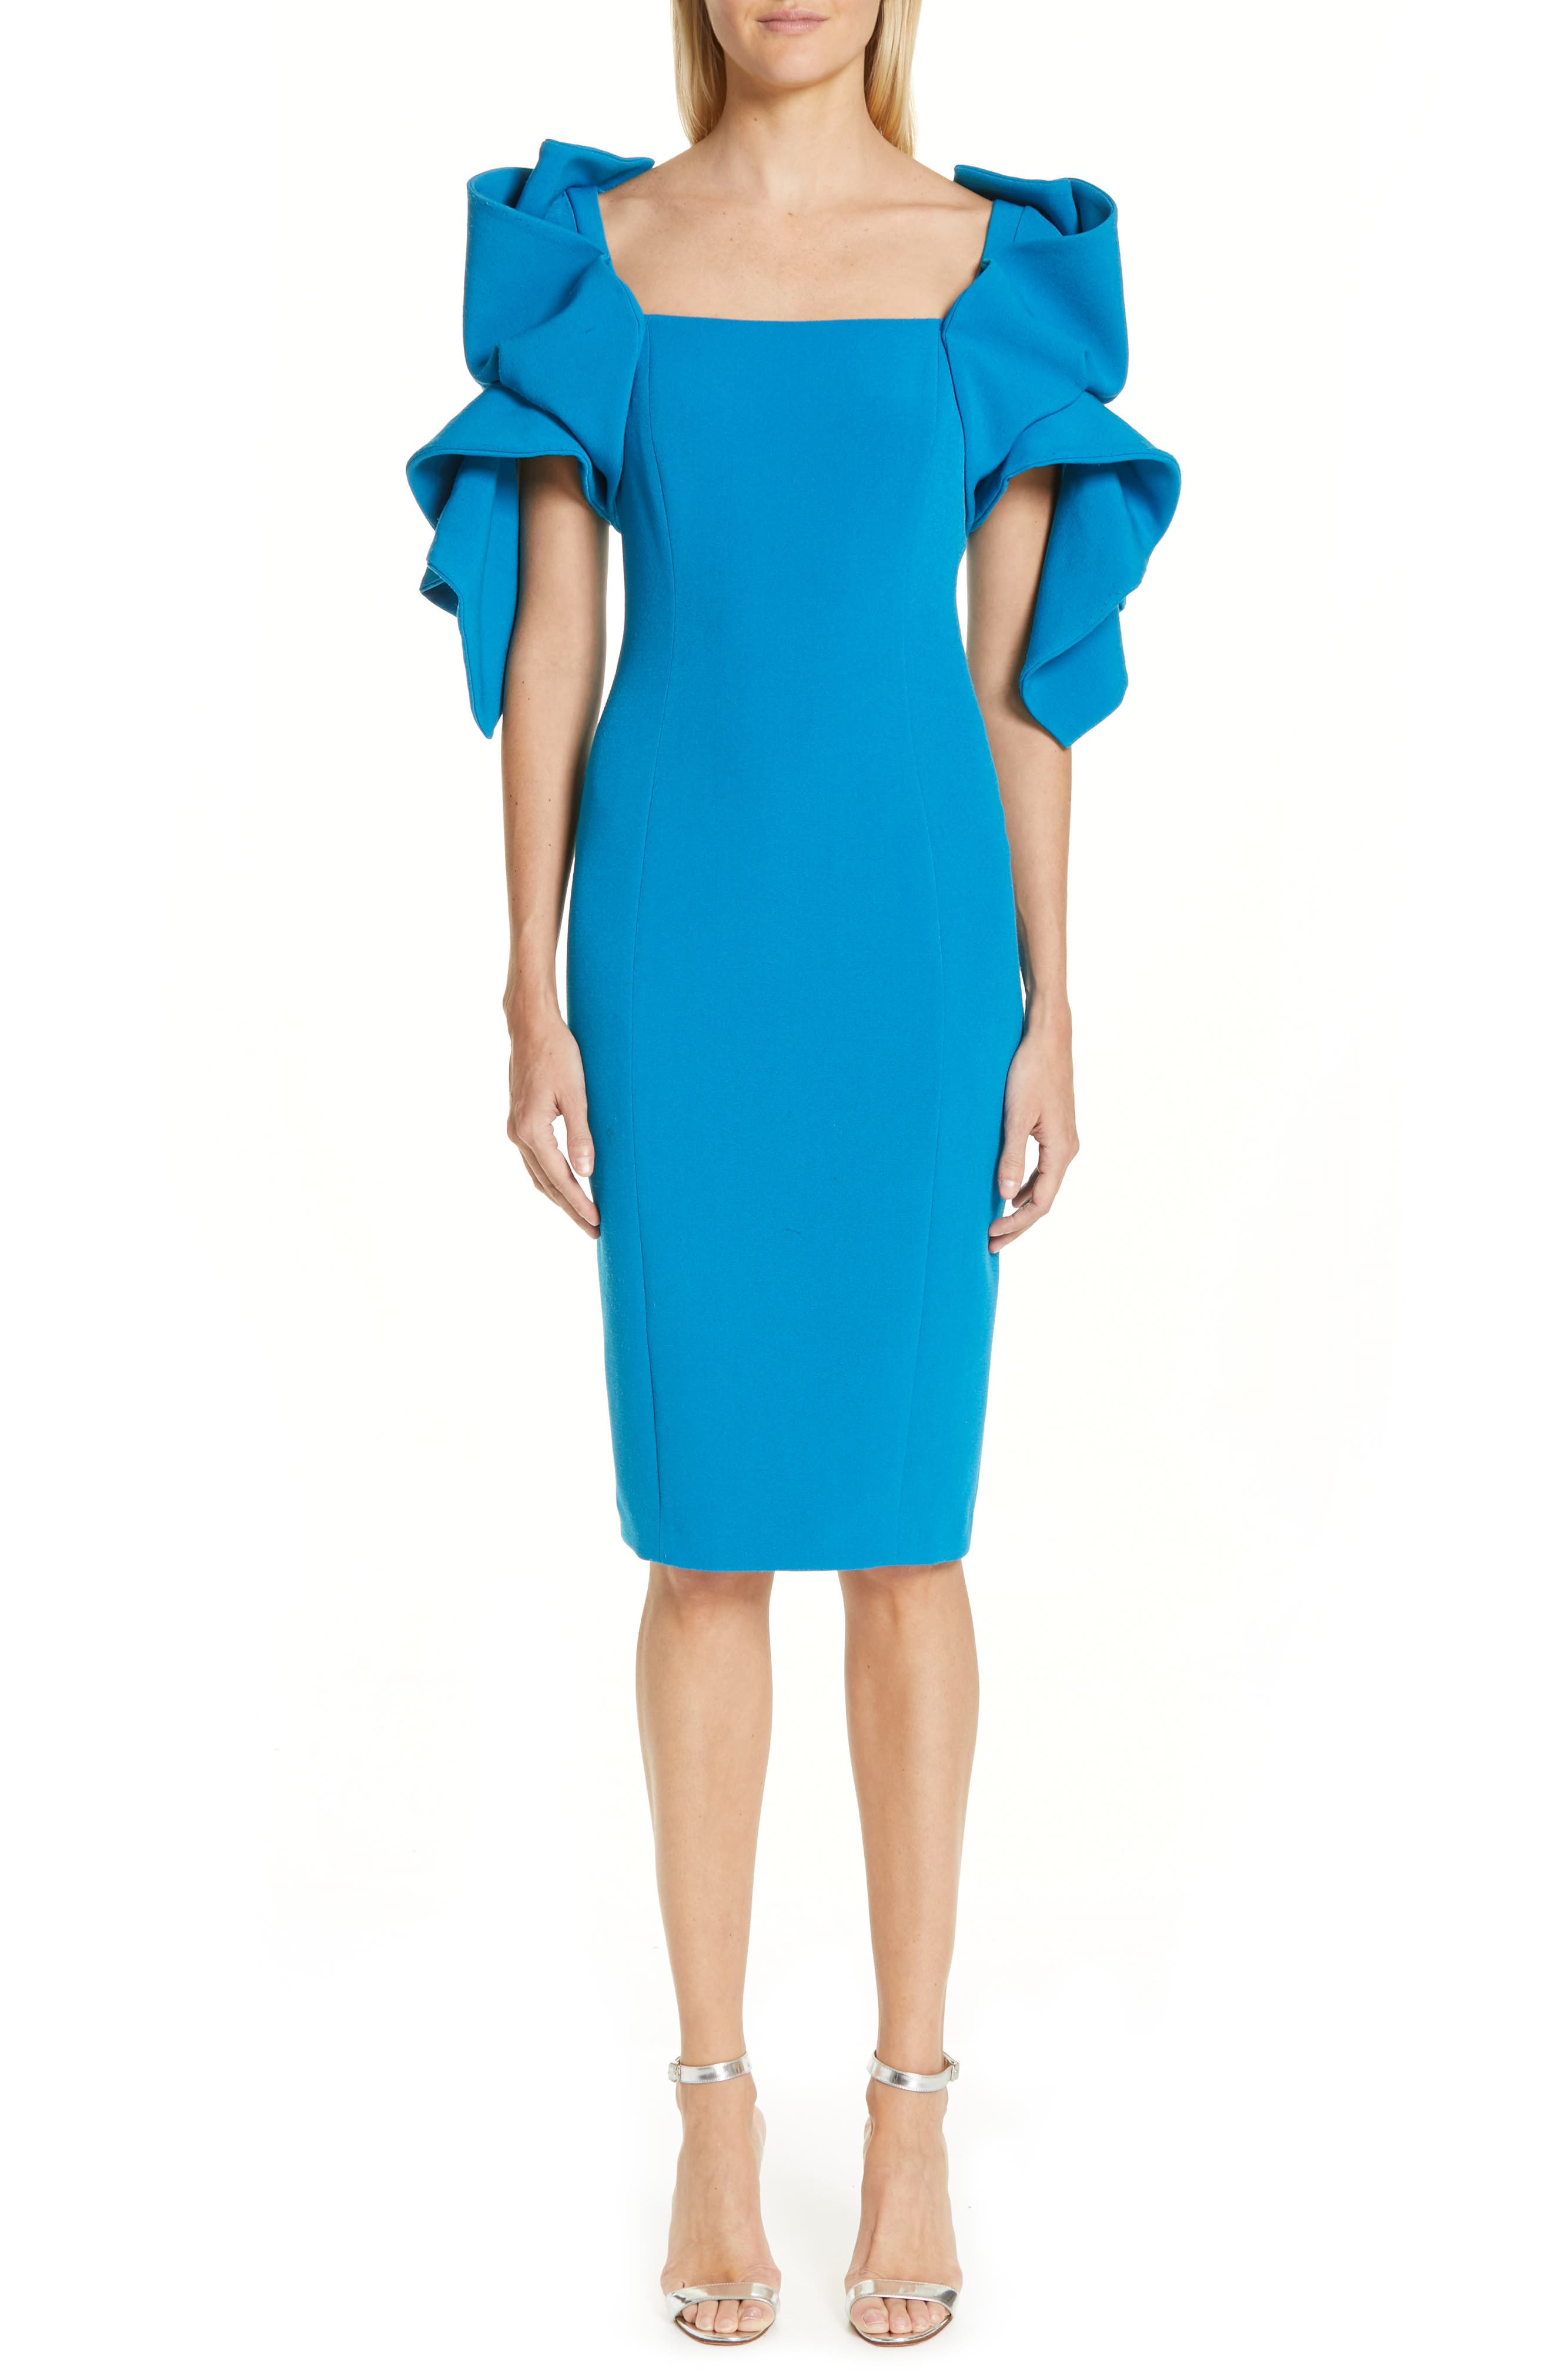 BADGLEY MISCHKA COLLECTION Origami Sleeve Cocktail Dress, Main, color, BRIGHT AQUA